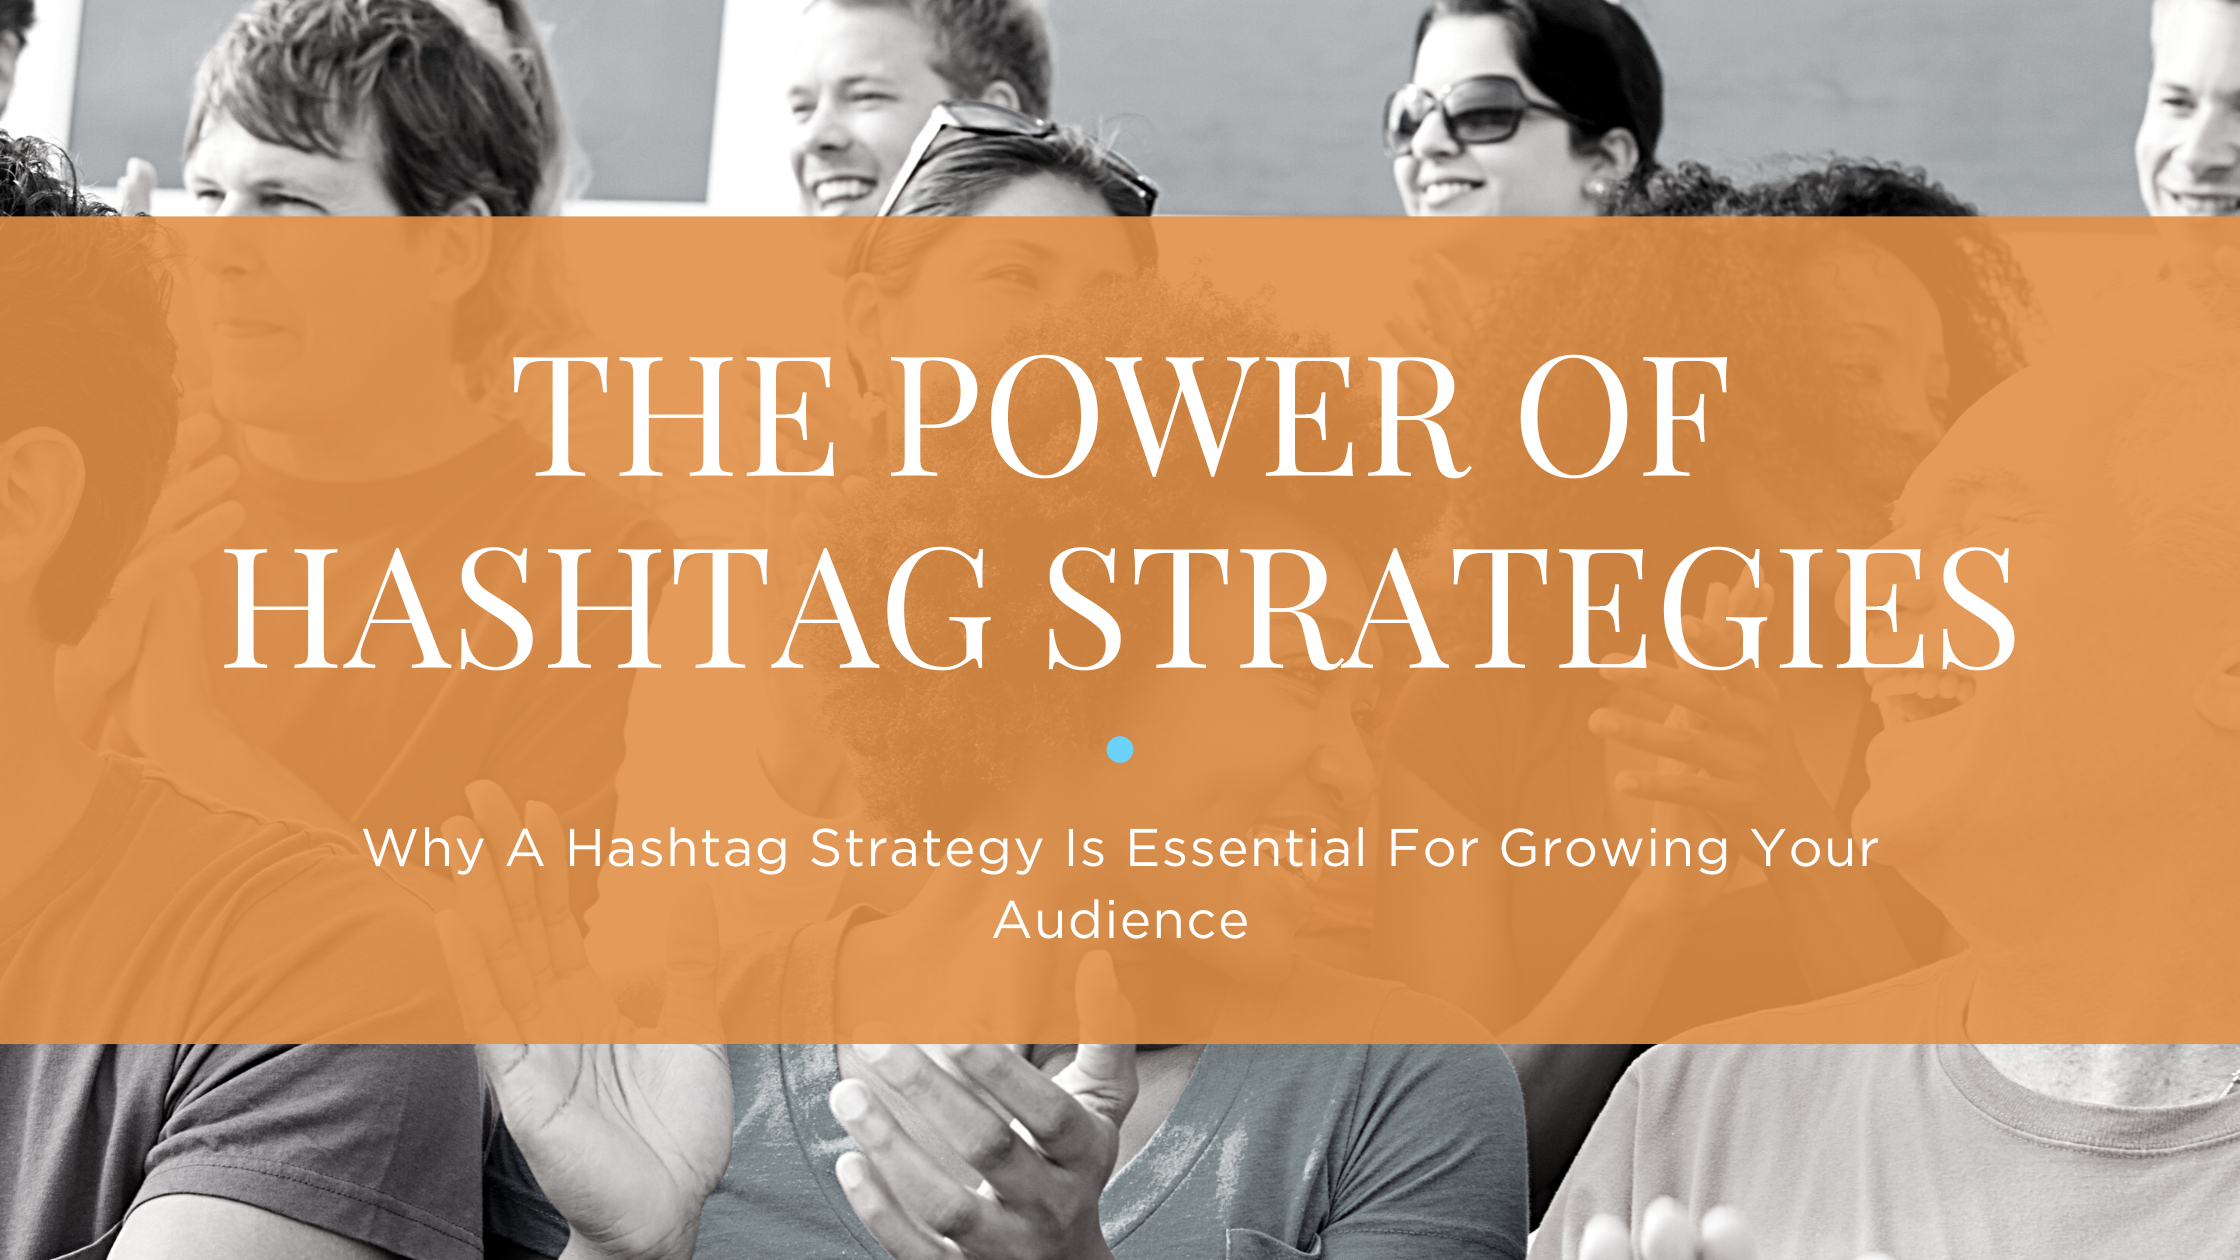 The power of hashtag strategies